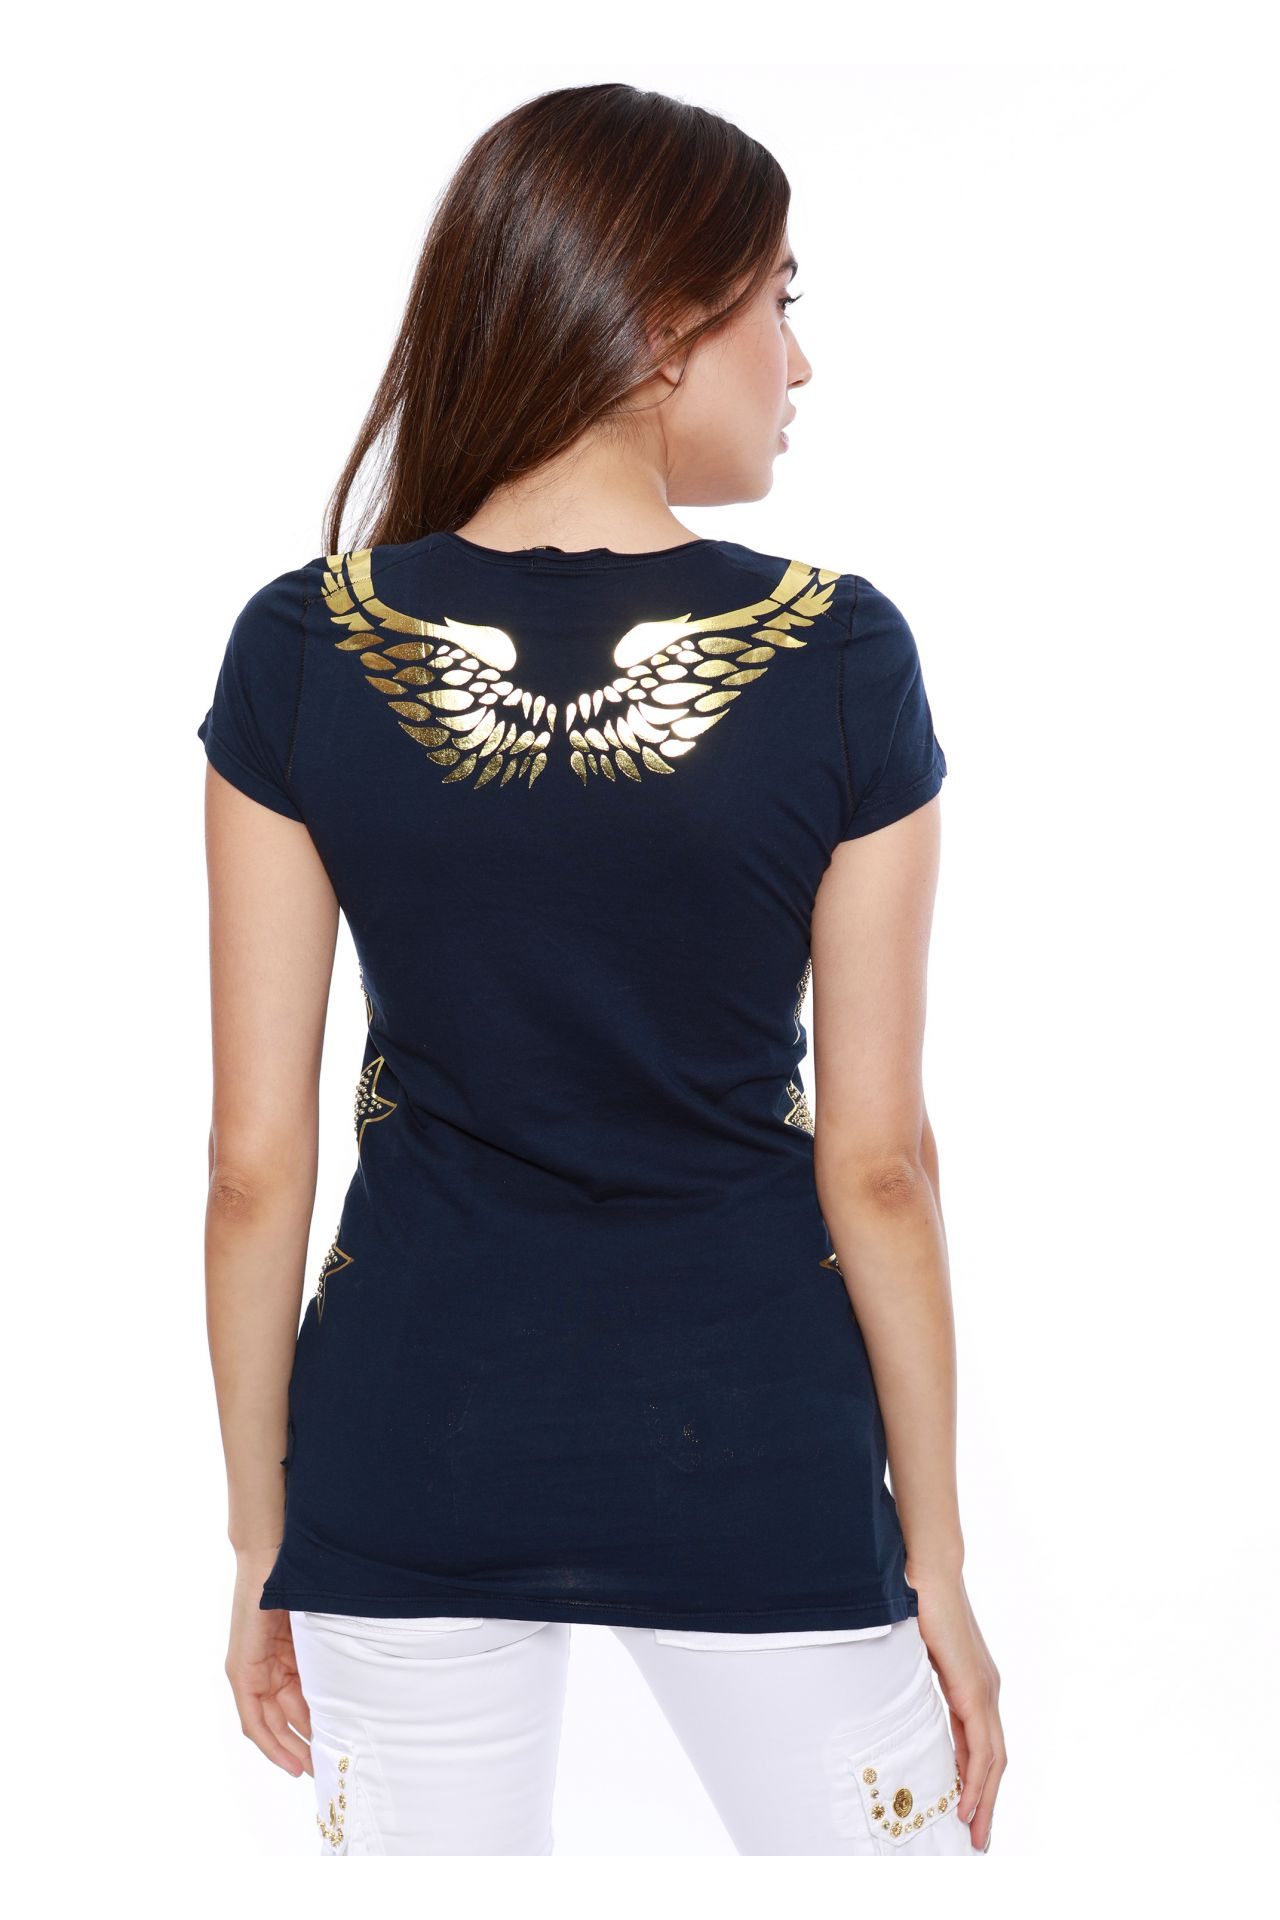 LASER CUT WINGS TEE IN NAVY